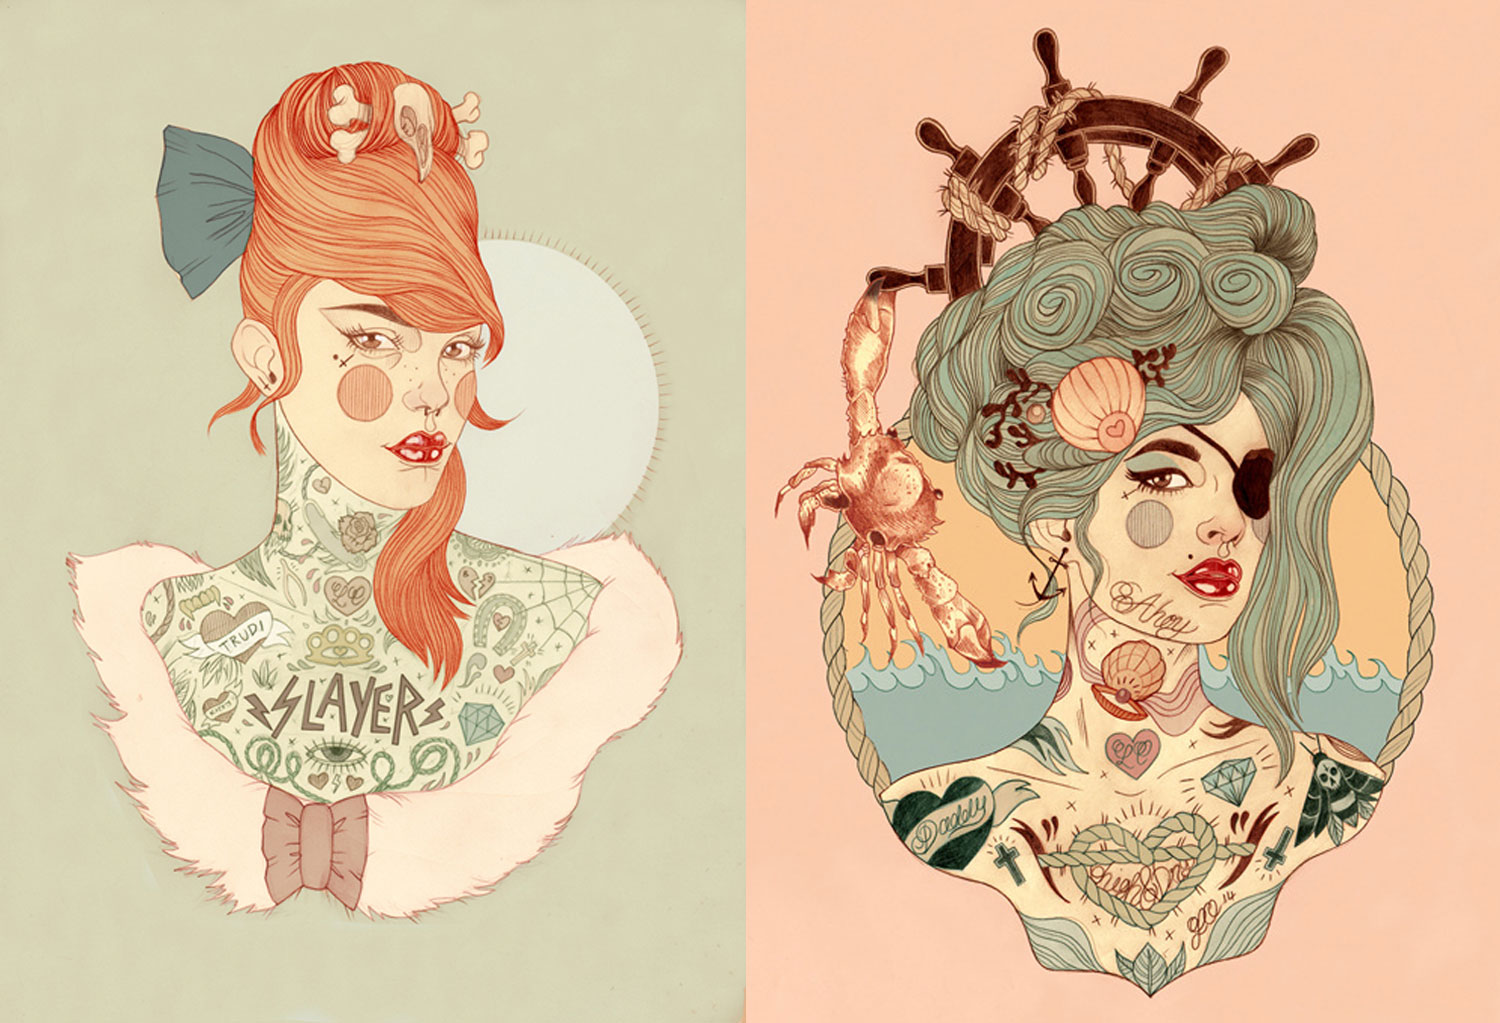 Illustrations by Liz Clements